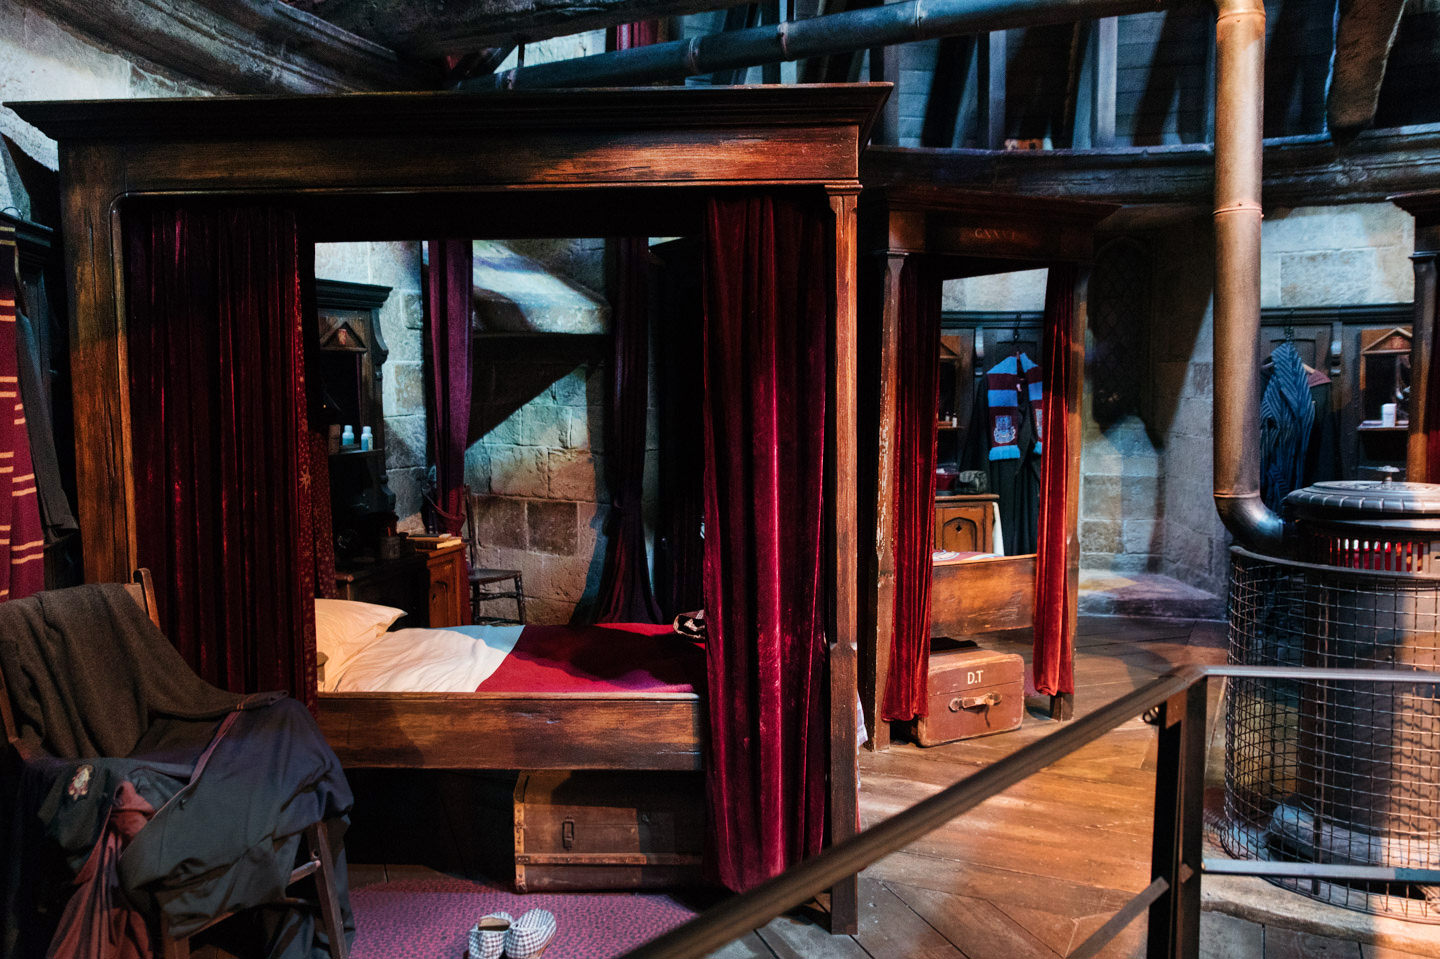 Blog-Mode-And-The-City-Lifestyle-Visite-Studios-Harry-Potter-Londres-10